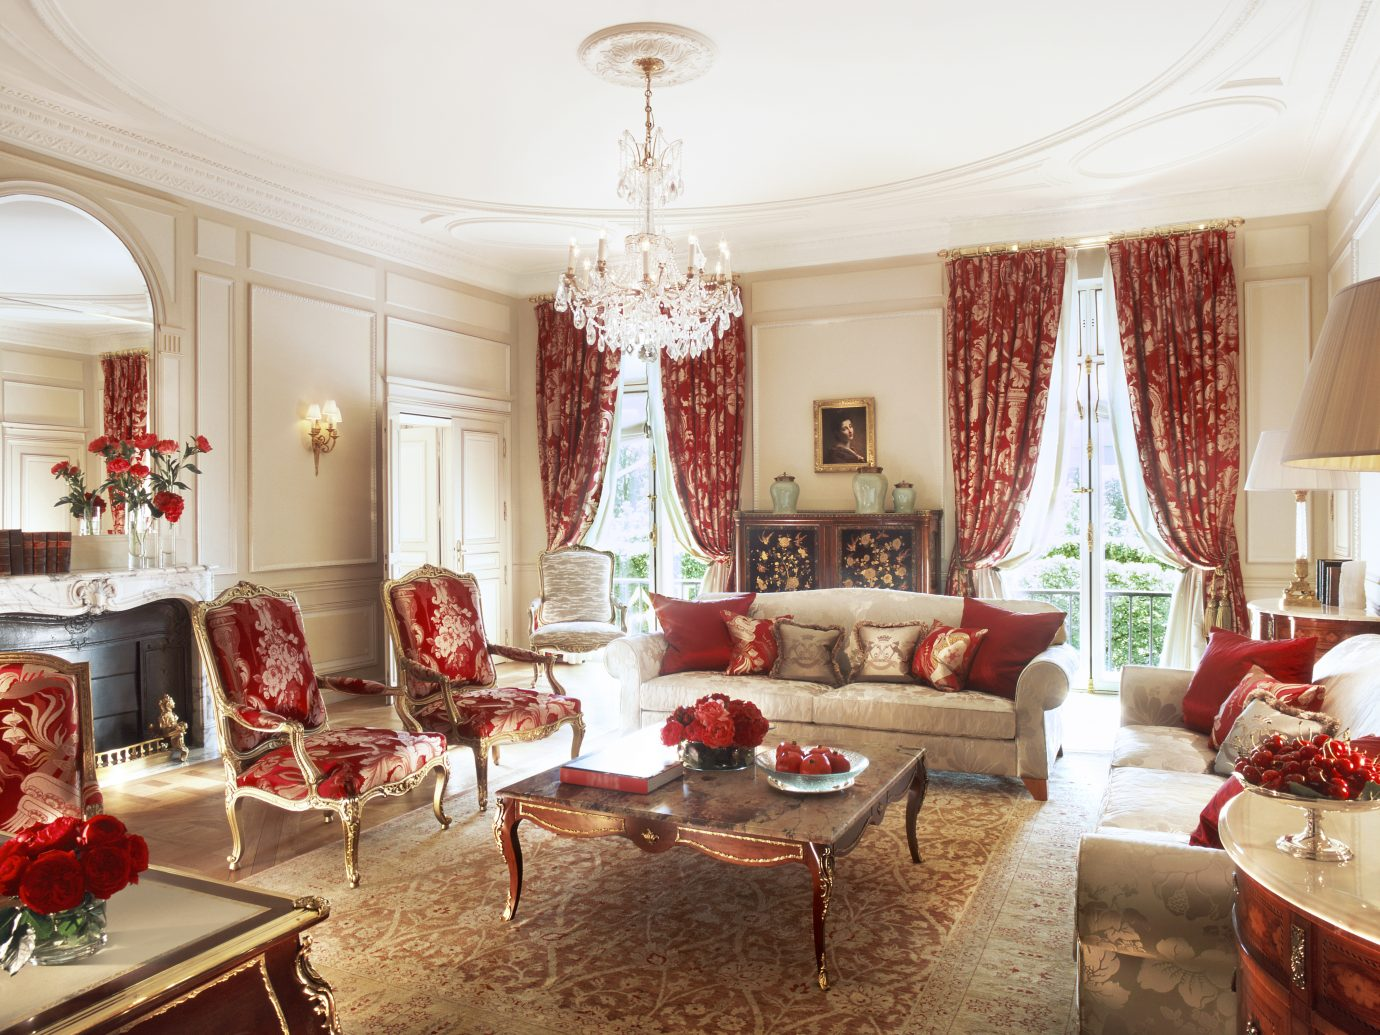 Presidential Suite at Le Meurice